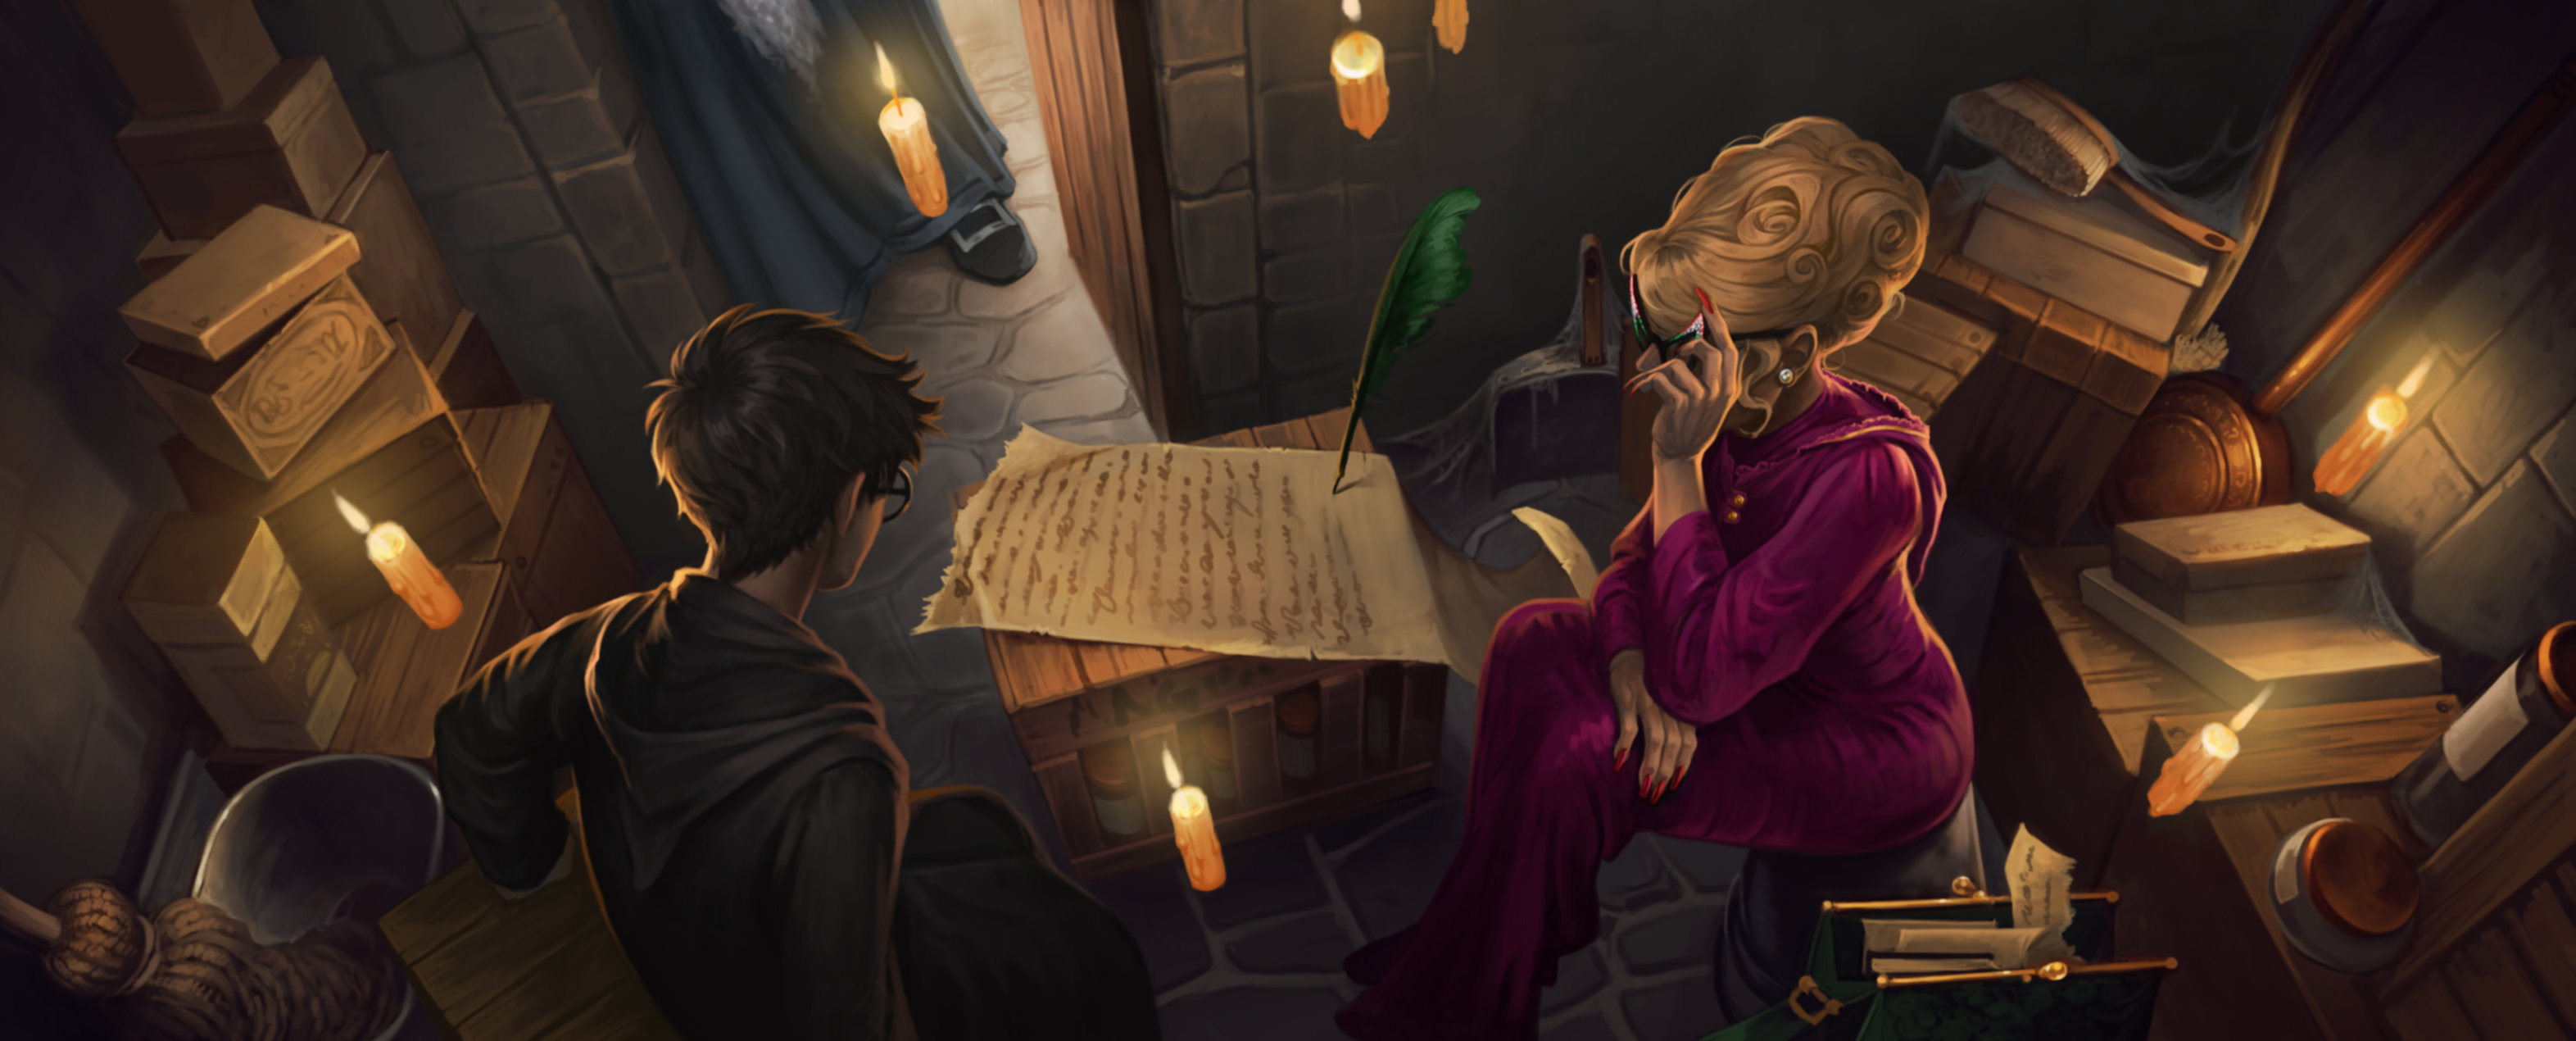 Rita Skeeter interviews Harry in the broom cupboard, her Quick Quote Quill takes down all the notes.